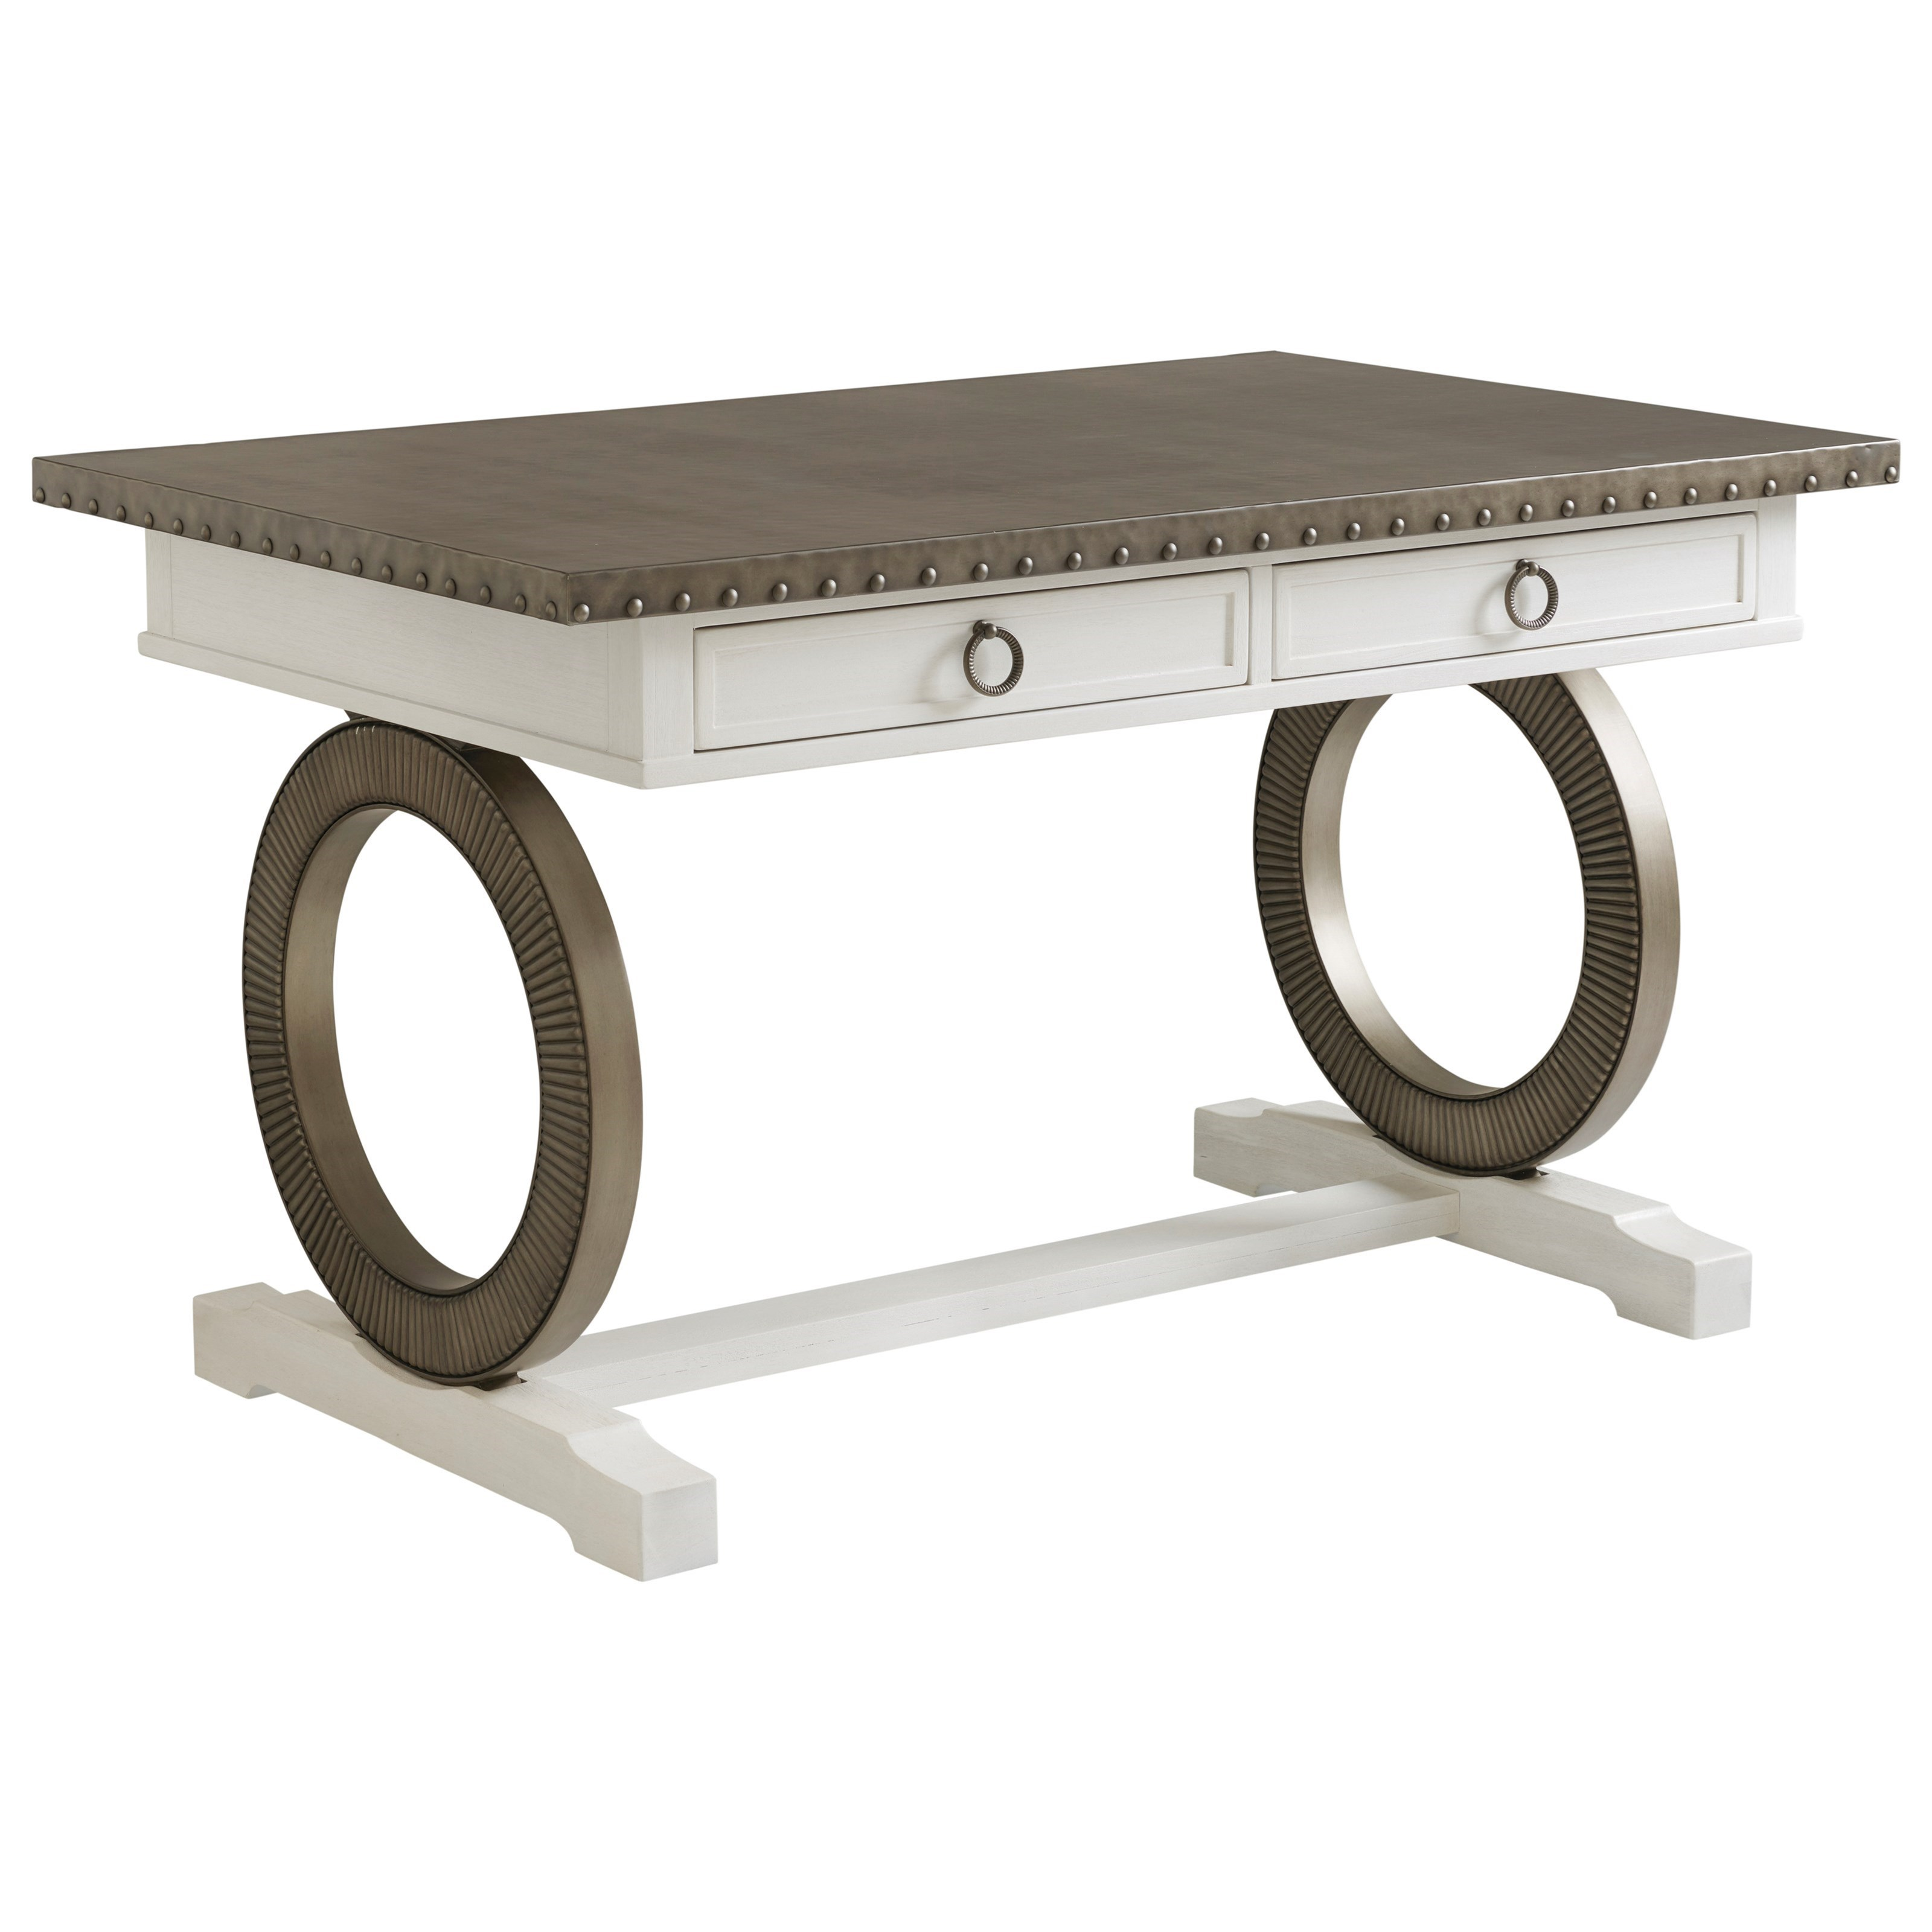 Ocean Breeze Sawgrass Bistro Table by Tommy Bahama Home at Baer's Furniture